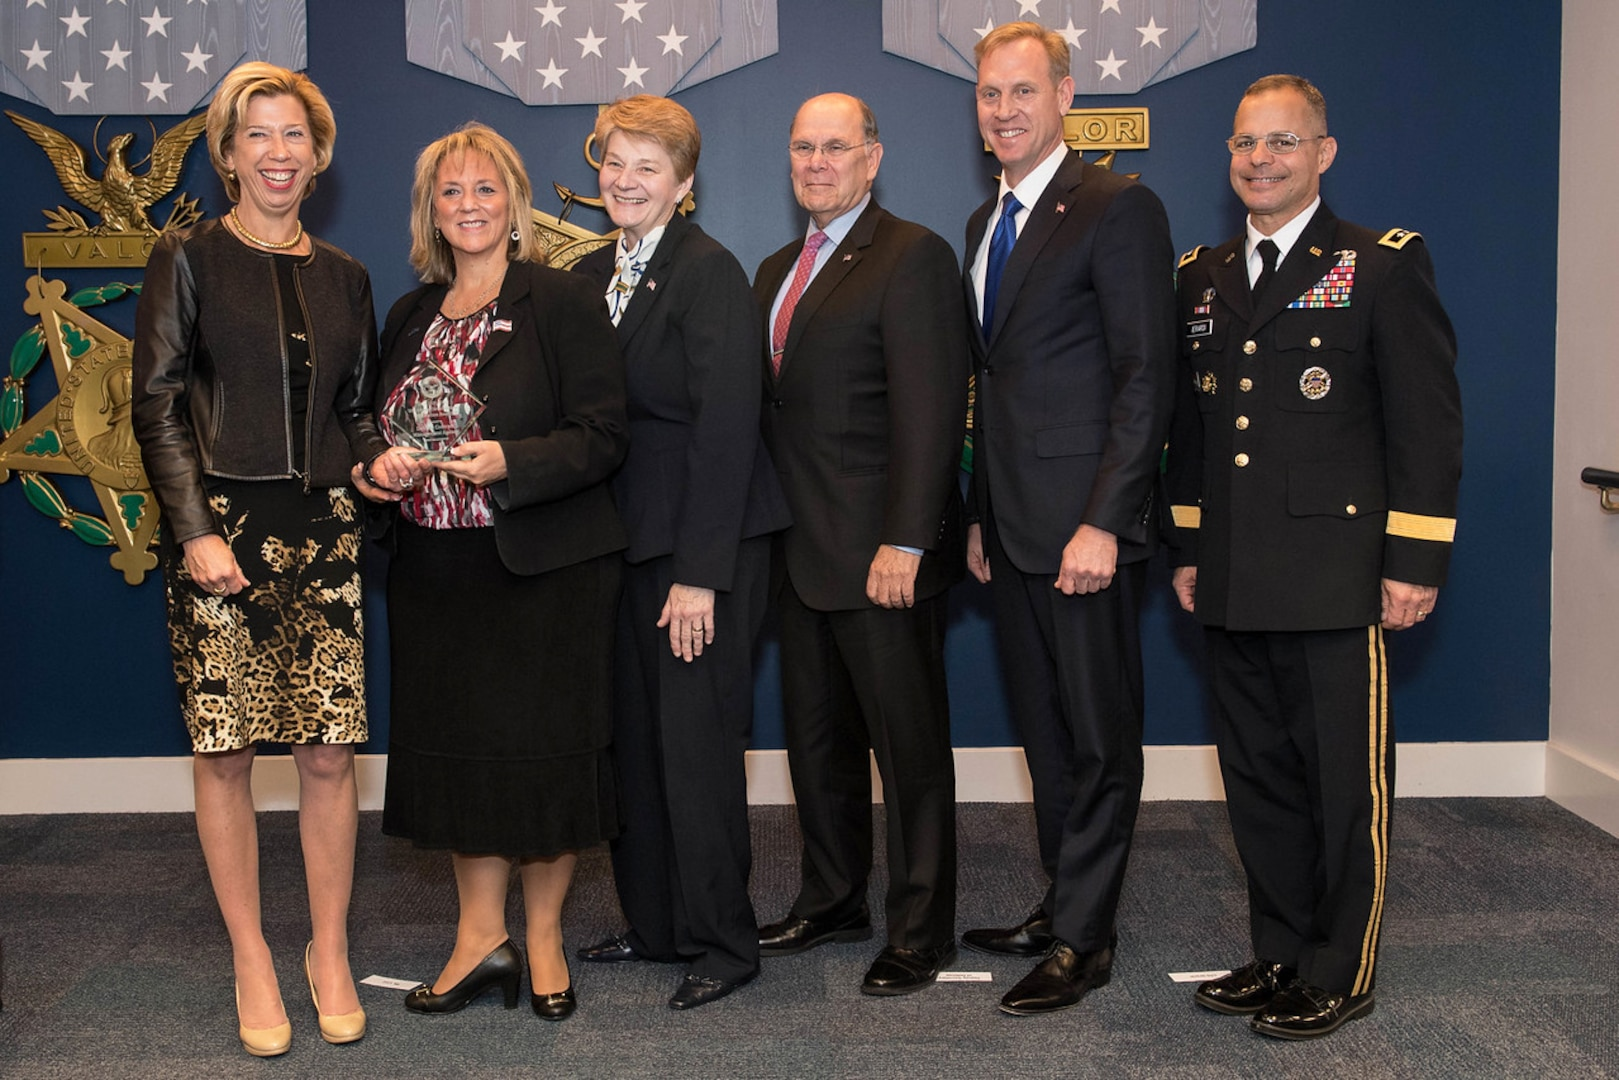 Ellen Lord, undersecretary of defense for acquisition, technology and logistics, presents the 2017 Defense Acquisition Workforce Development Innovation Award to the Defense Contract Management Agency at a Dec. 6 ceremony at the Pentagon. From left are Lord; Kathy Butera, executive director, DCMA Human Capital; Marie Greening, DCMA deputy director; Chris Zubof, director, DCMA Strategic Learning Division; Patrick Shanahan, deputy secretary of defense; and Army Lt. Gen. Anthony Ierardi, director of force structure, resources and assessment in the Joint Staff. (Army photo by Spc. Tammy Nooner)